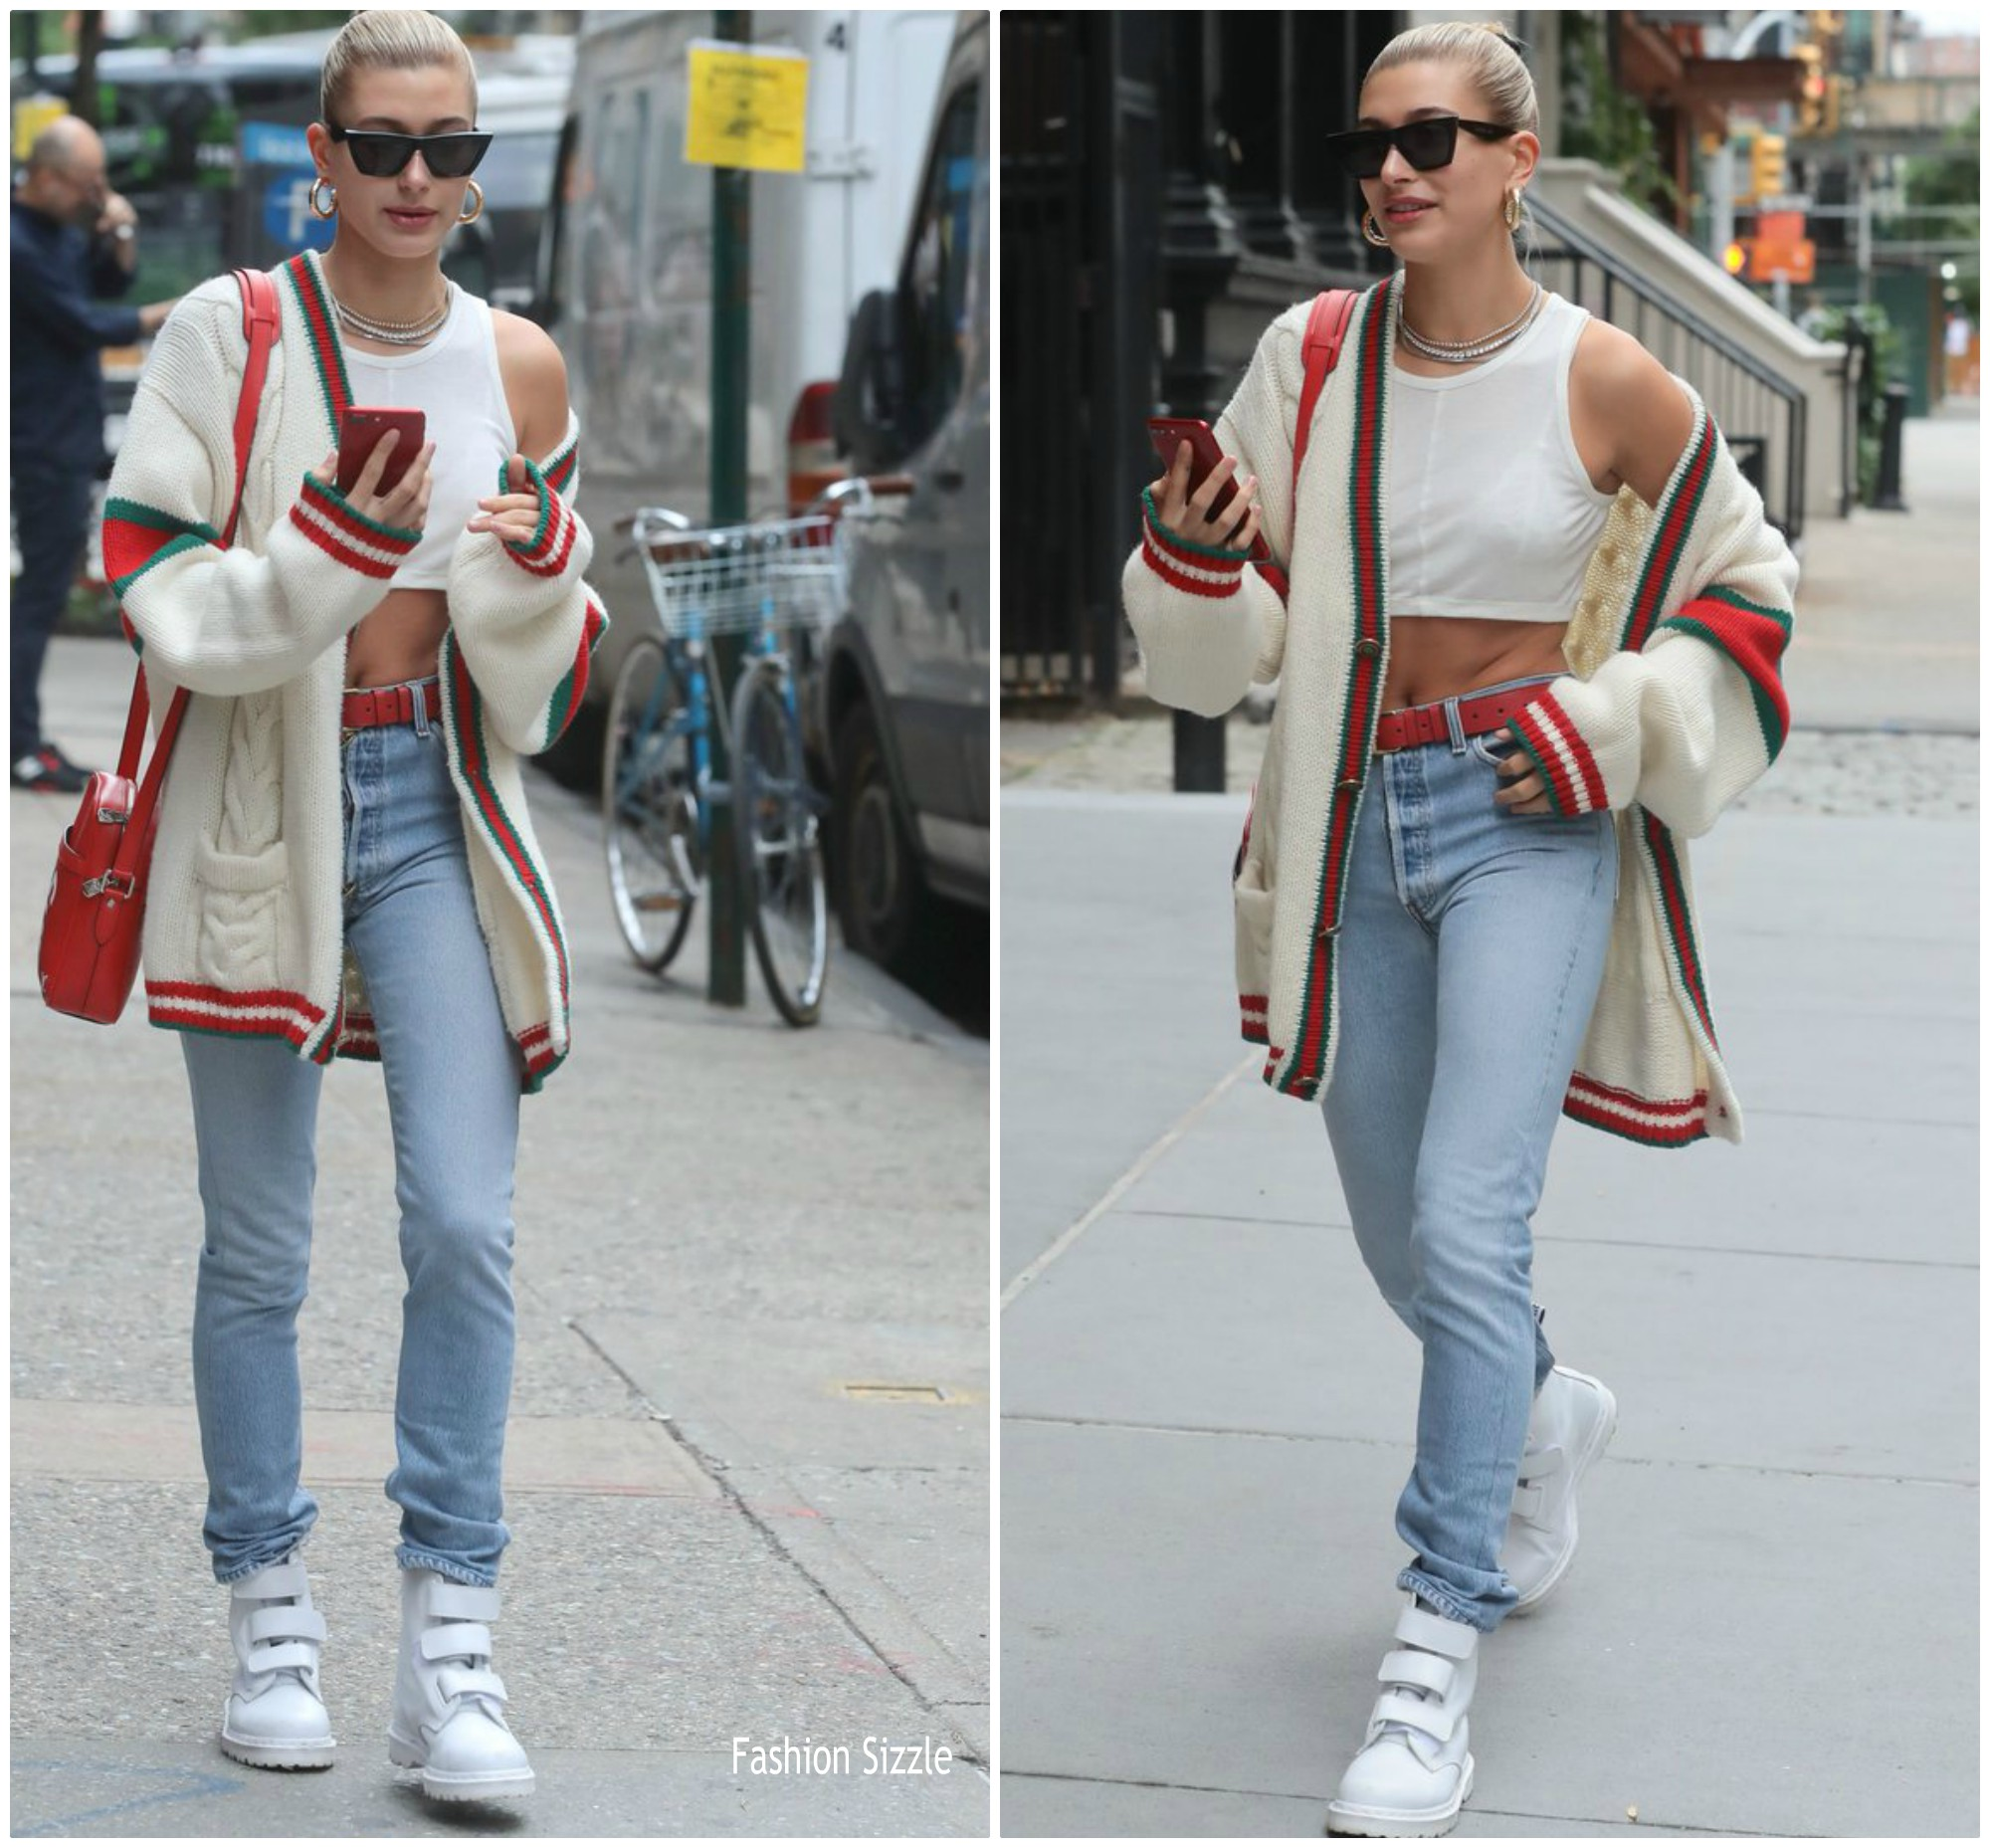 hailey-baldwin-in-gucci-out-in-new-york